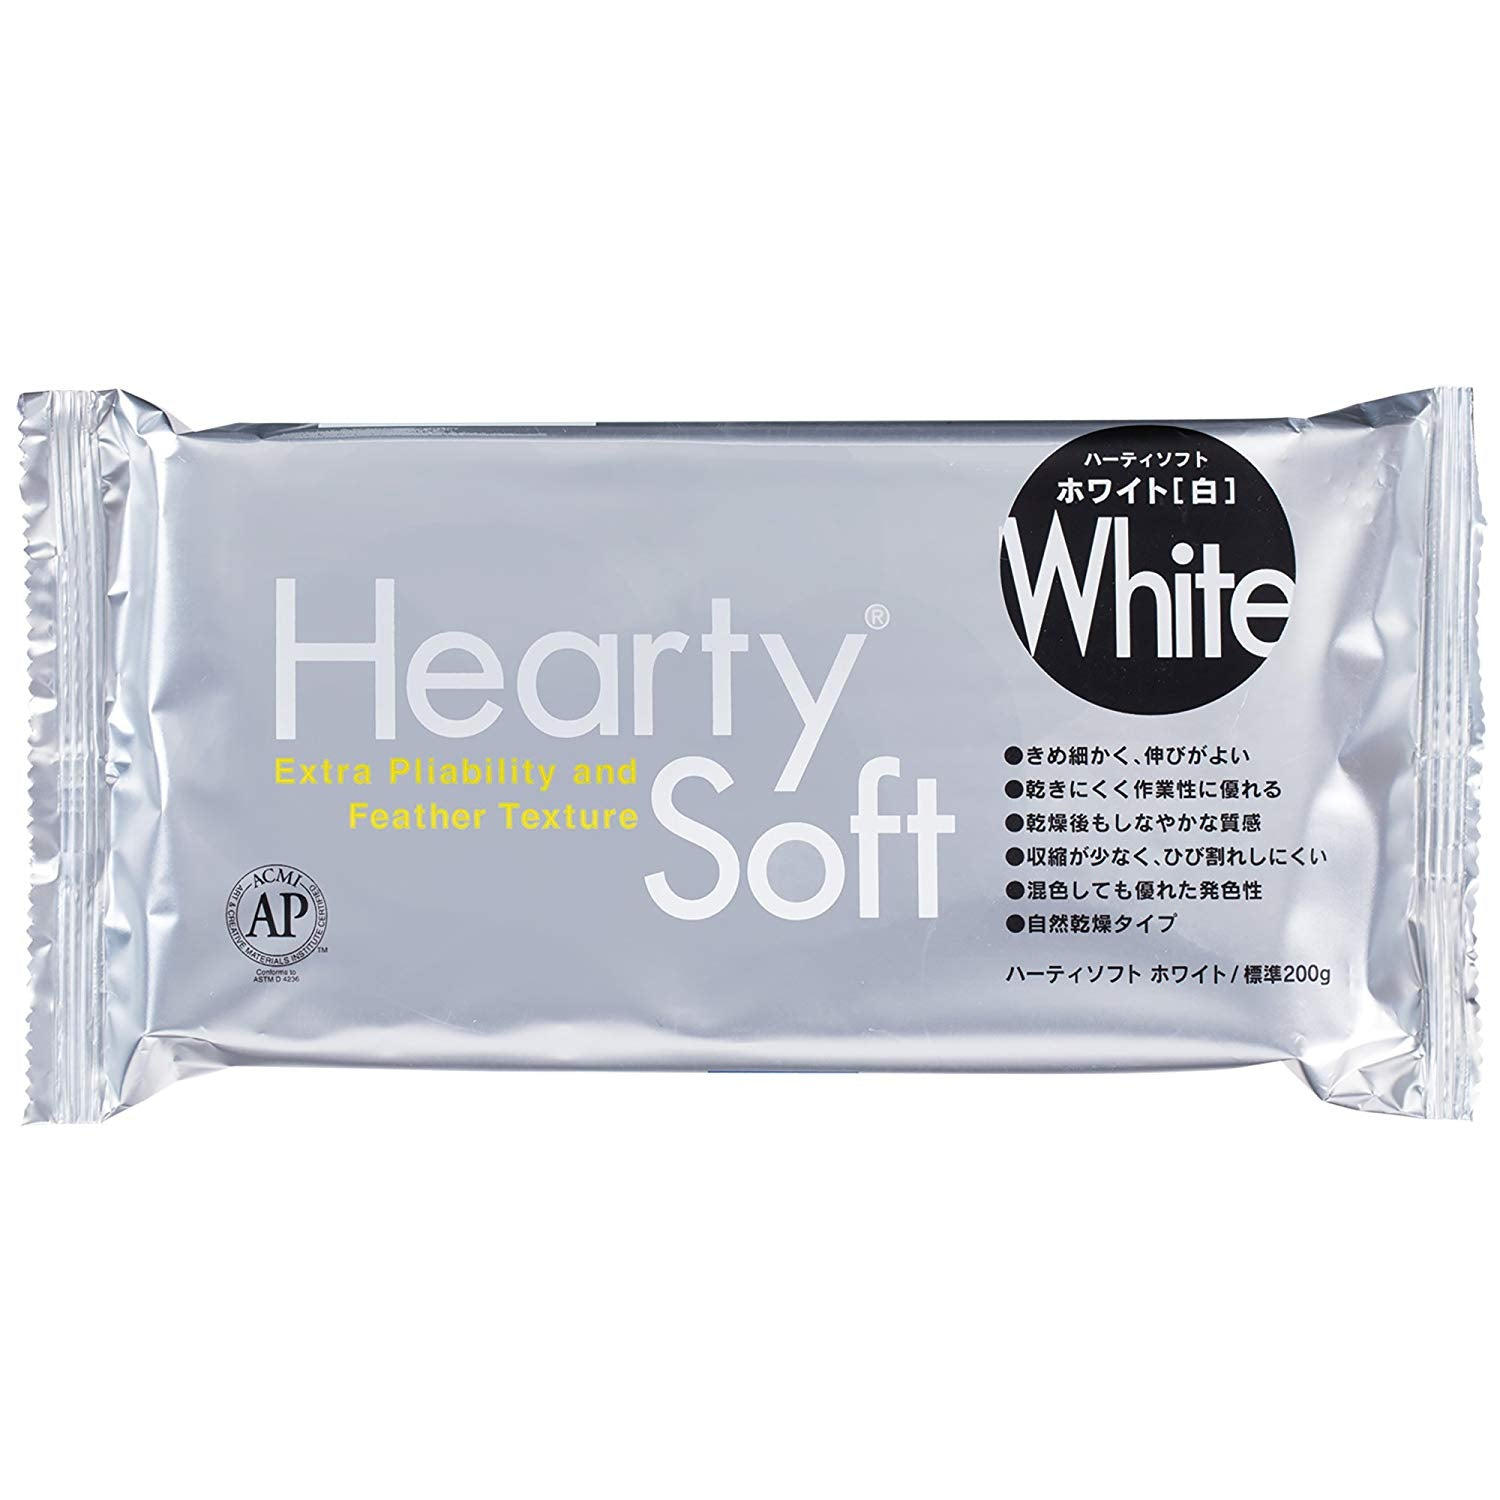 Padico Hearty soft clay 200g [white]  by Pajiko